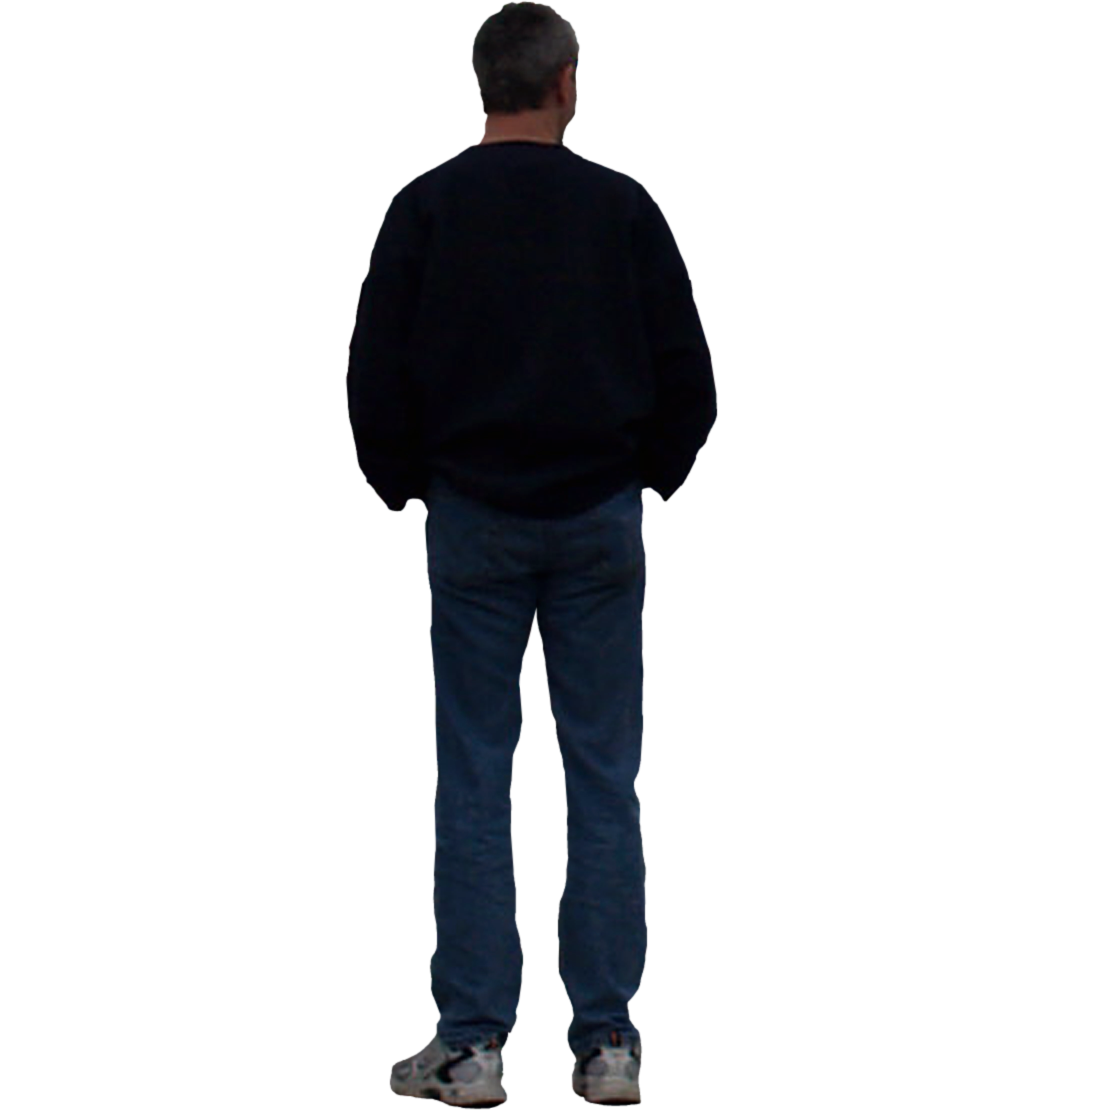 Human back png. Male body image